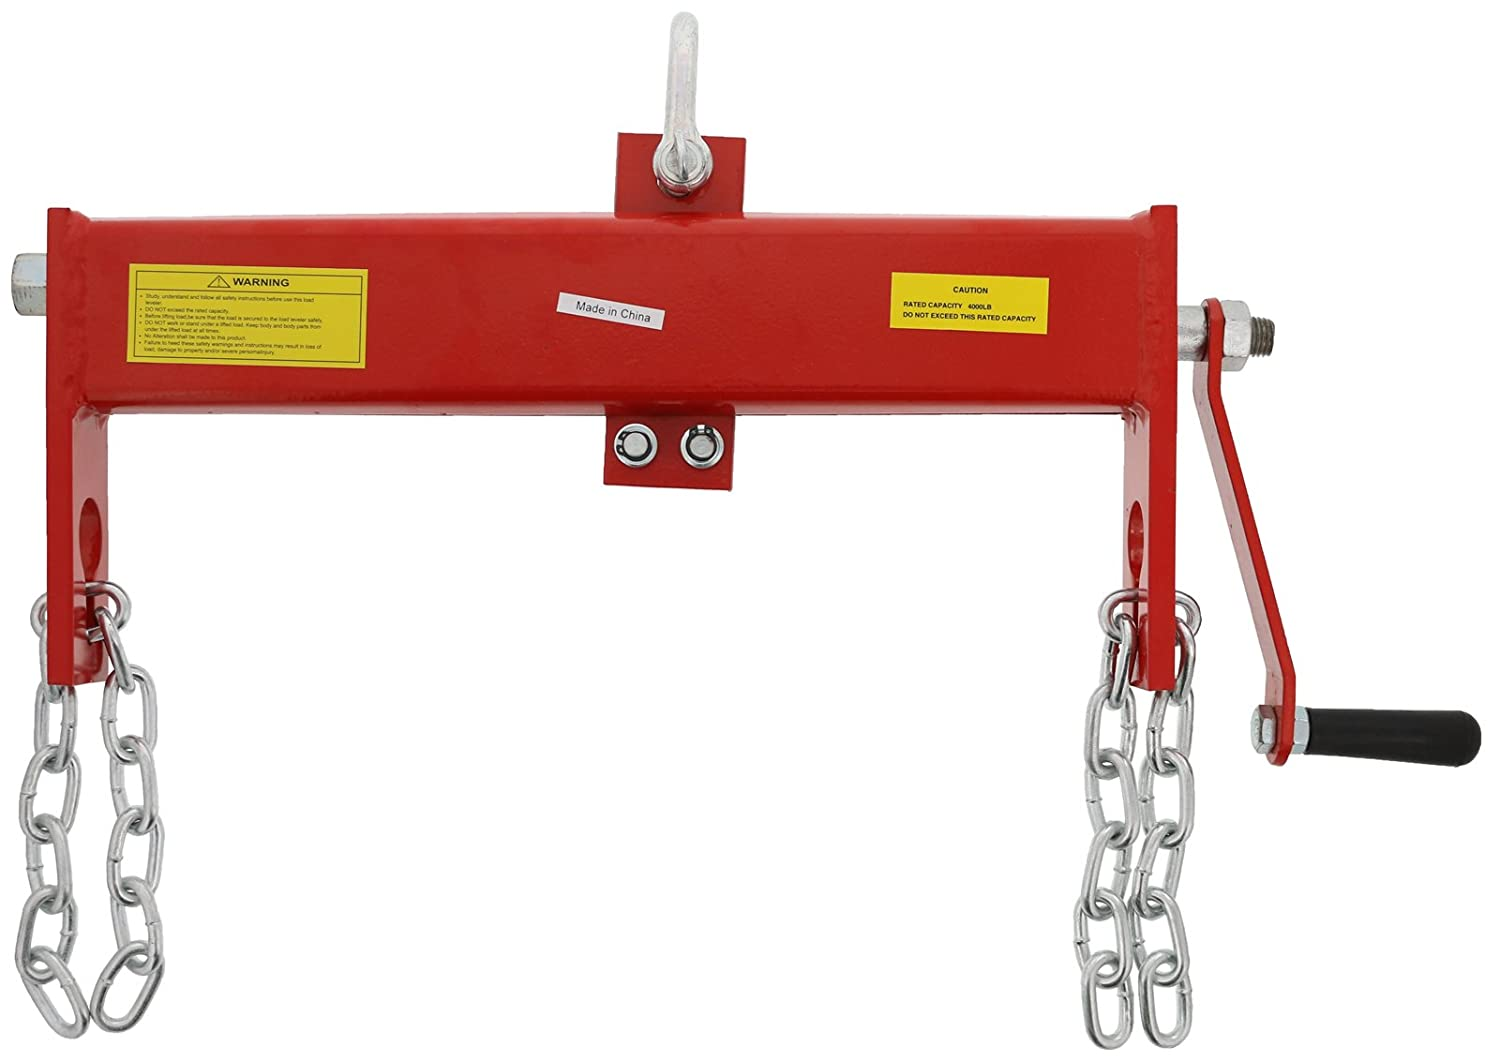 Dragway Tools Heavy Duty Steel 2 Ton (4000 lb) Load Leveler for use with Engine Hoist/Crane